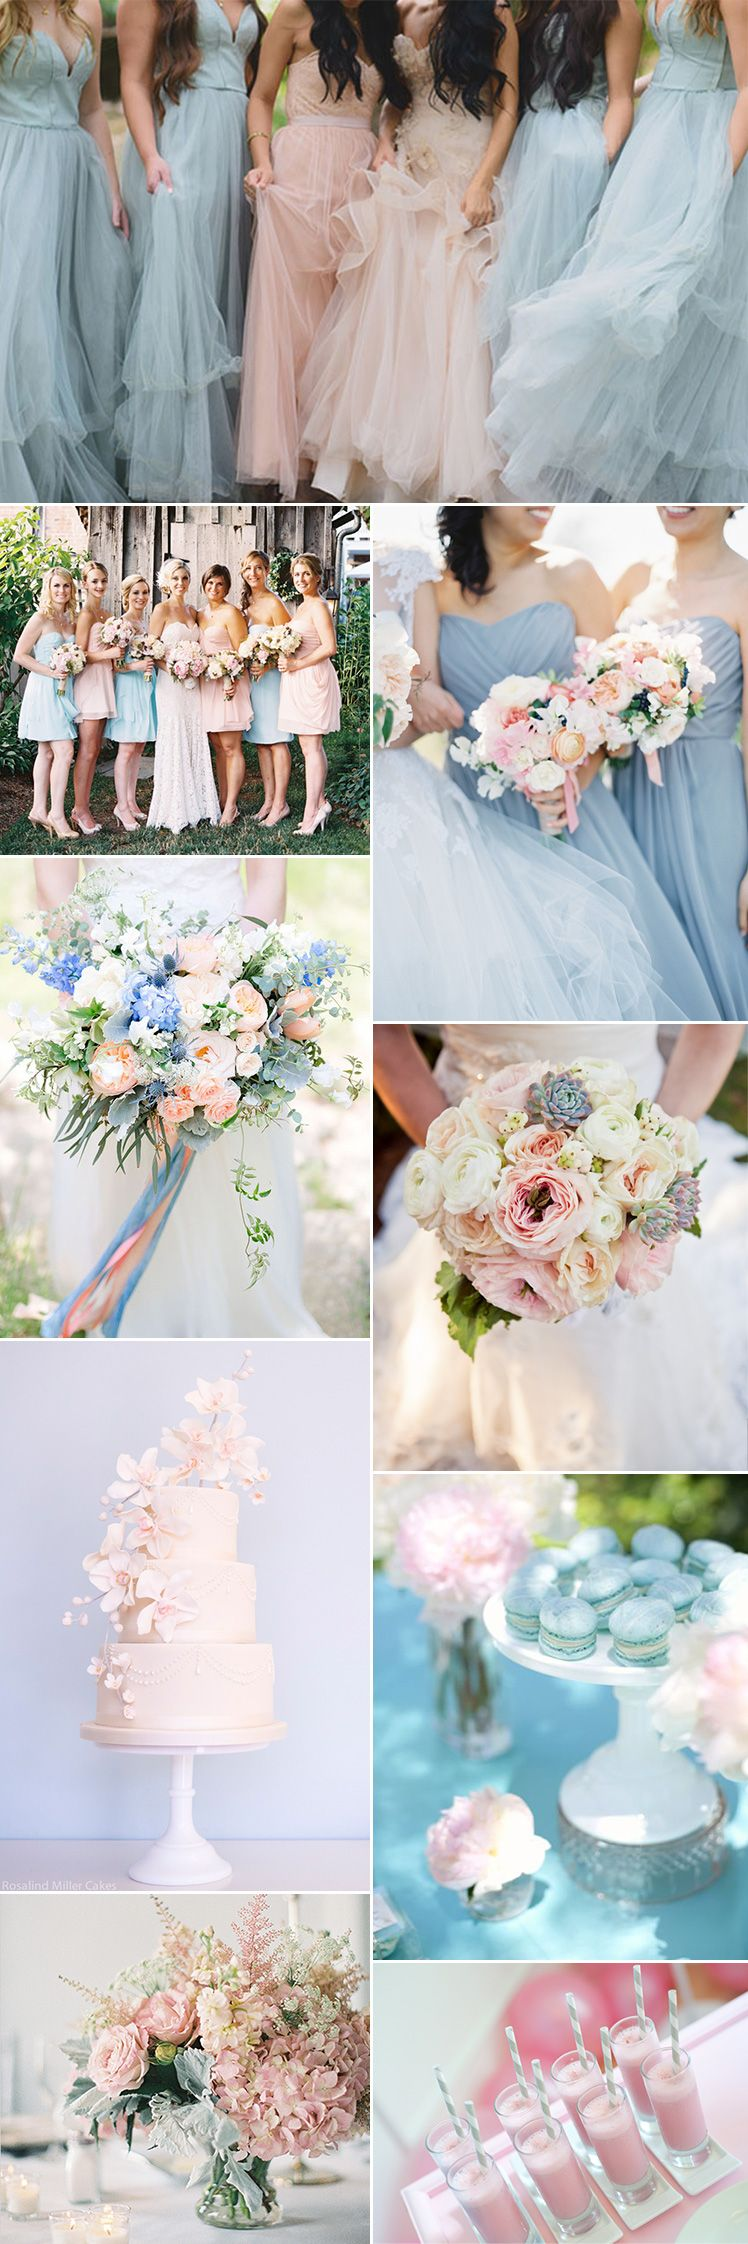 Pink & Blue Wedding Ideas Inspired by Pantone | Rose quartz ...